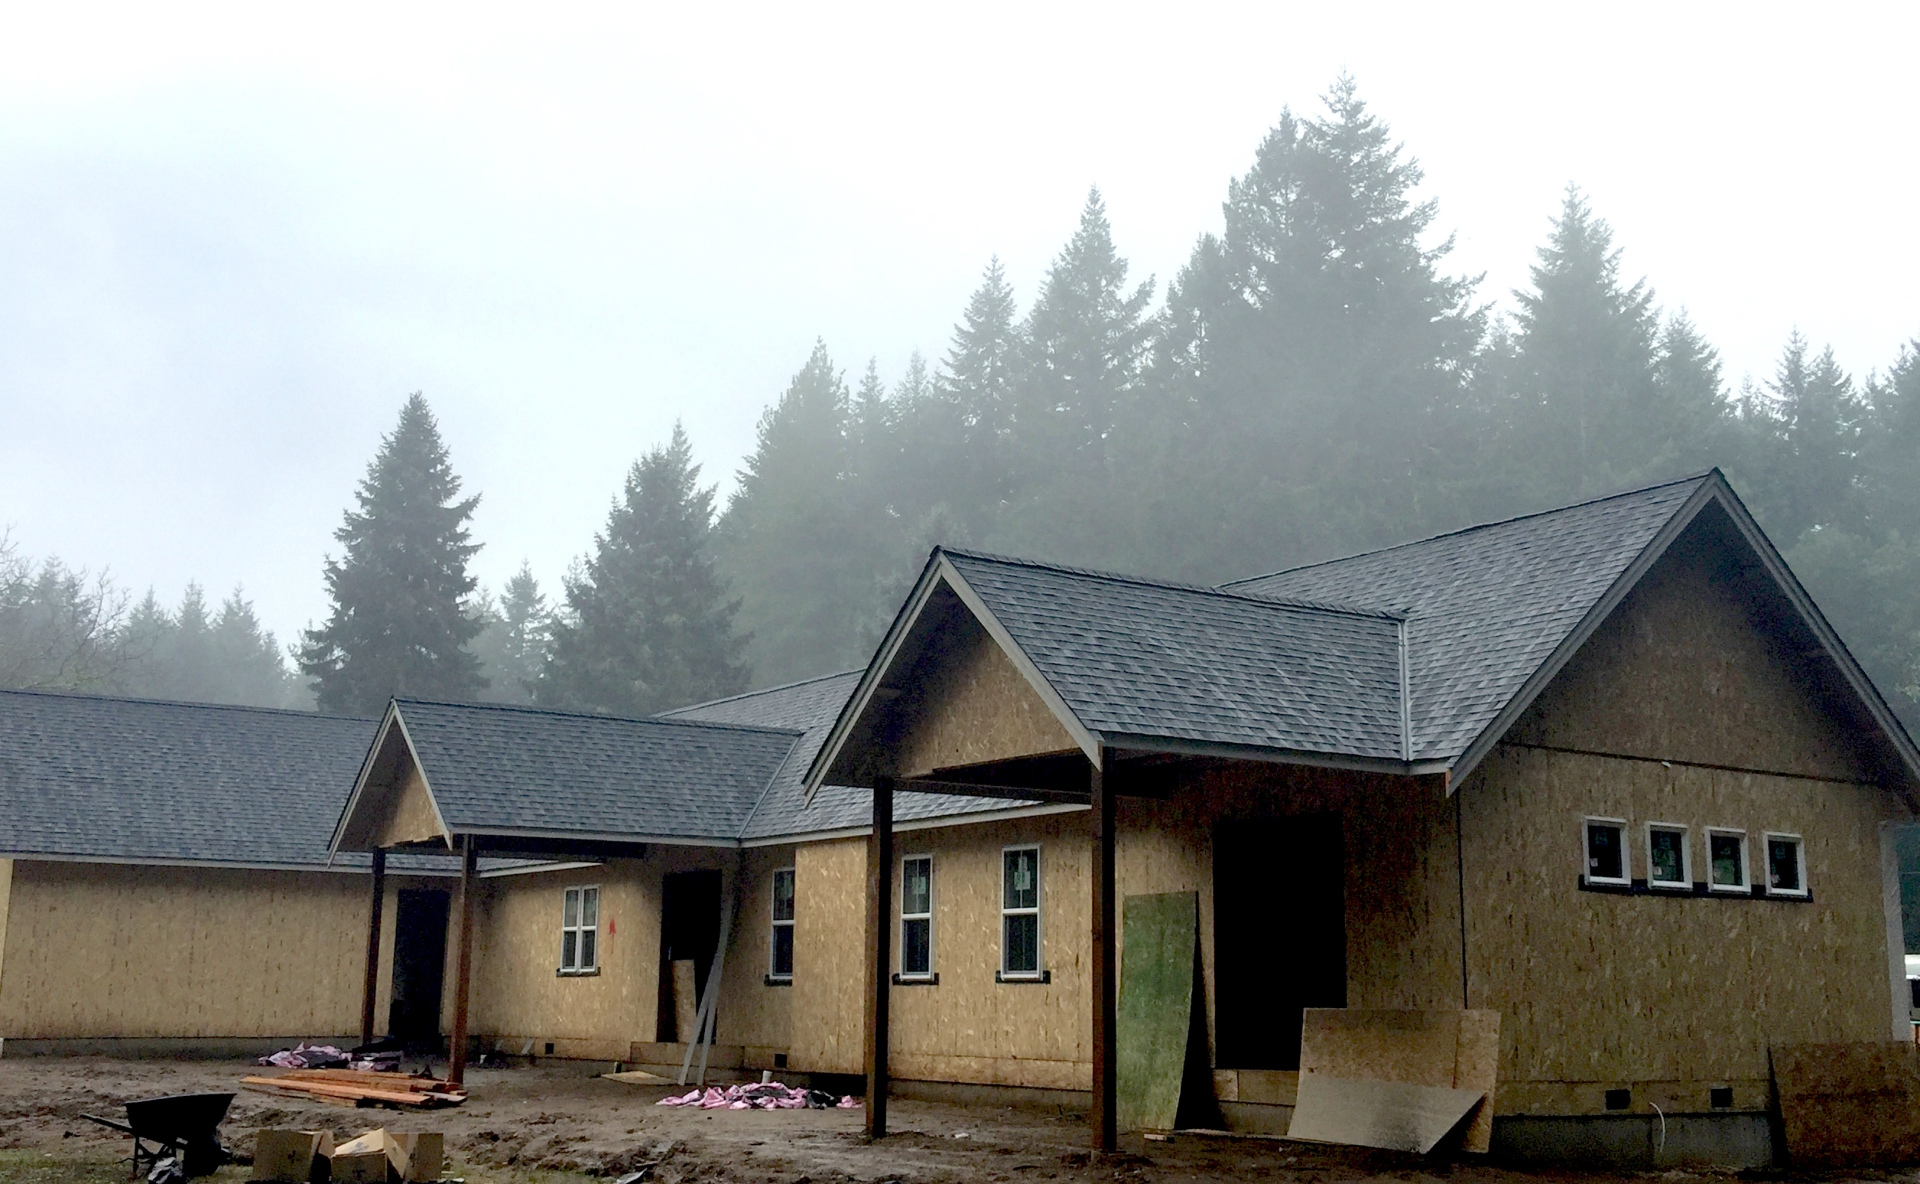 Residential Roofing Company Serving Olalla, WA